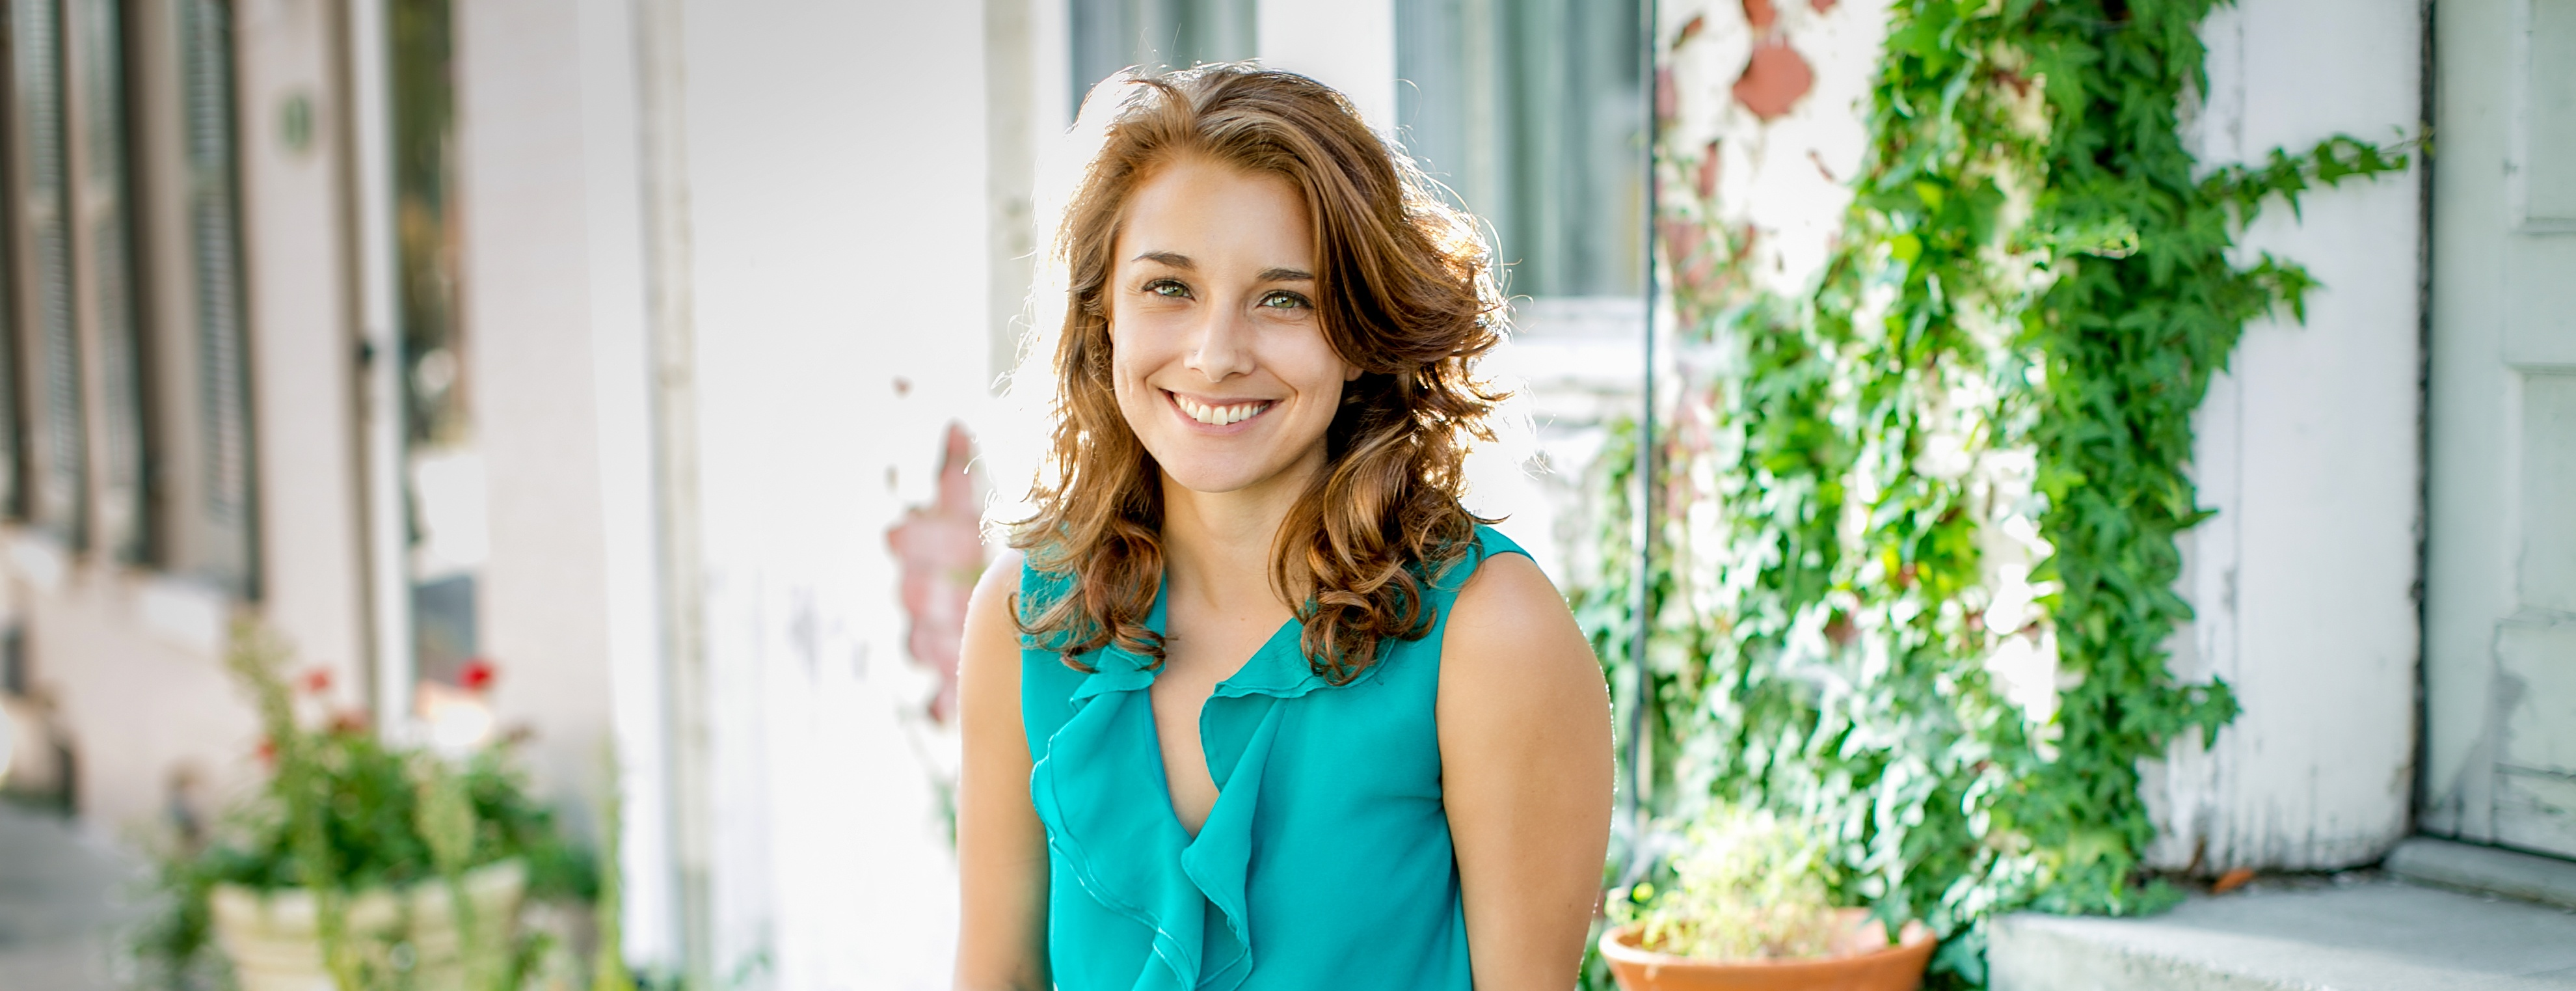 Mira Bragg, Inbound Marketing Coordinator, Illumine8 Marketing and PR